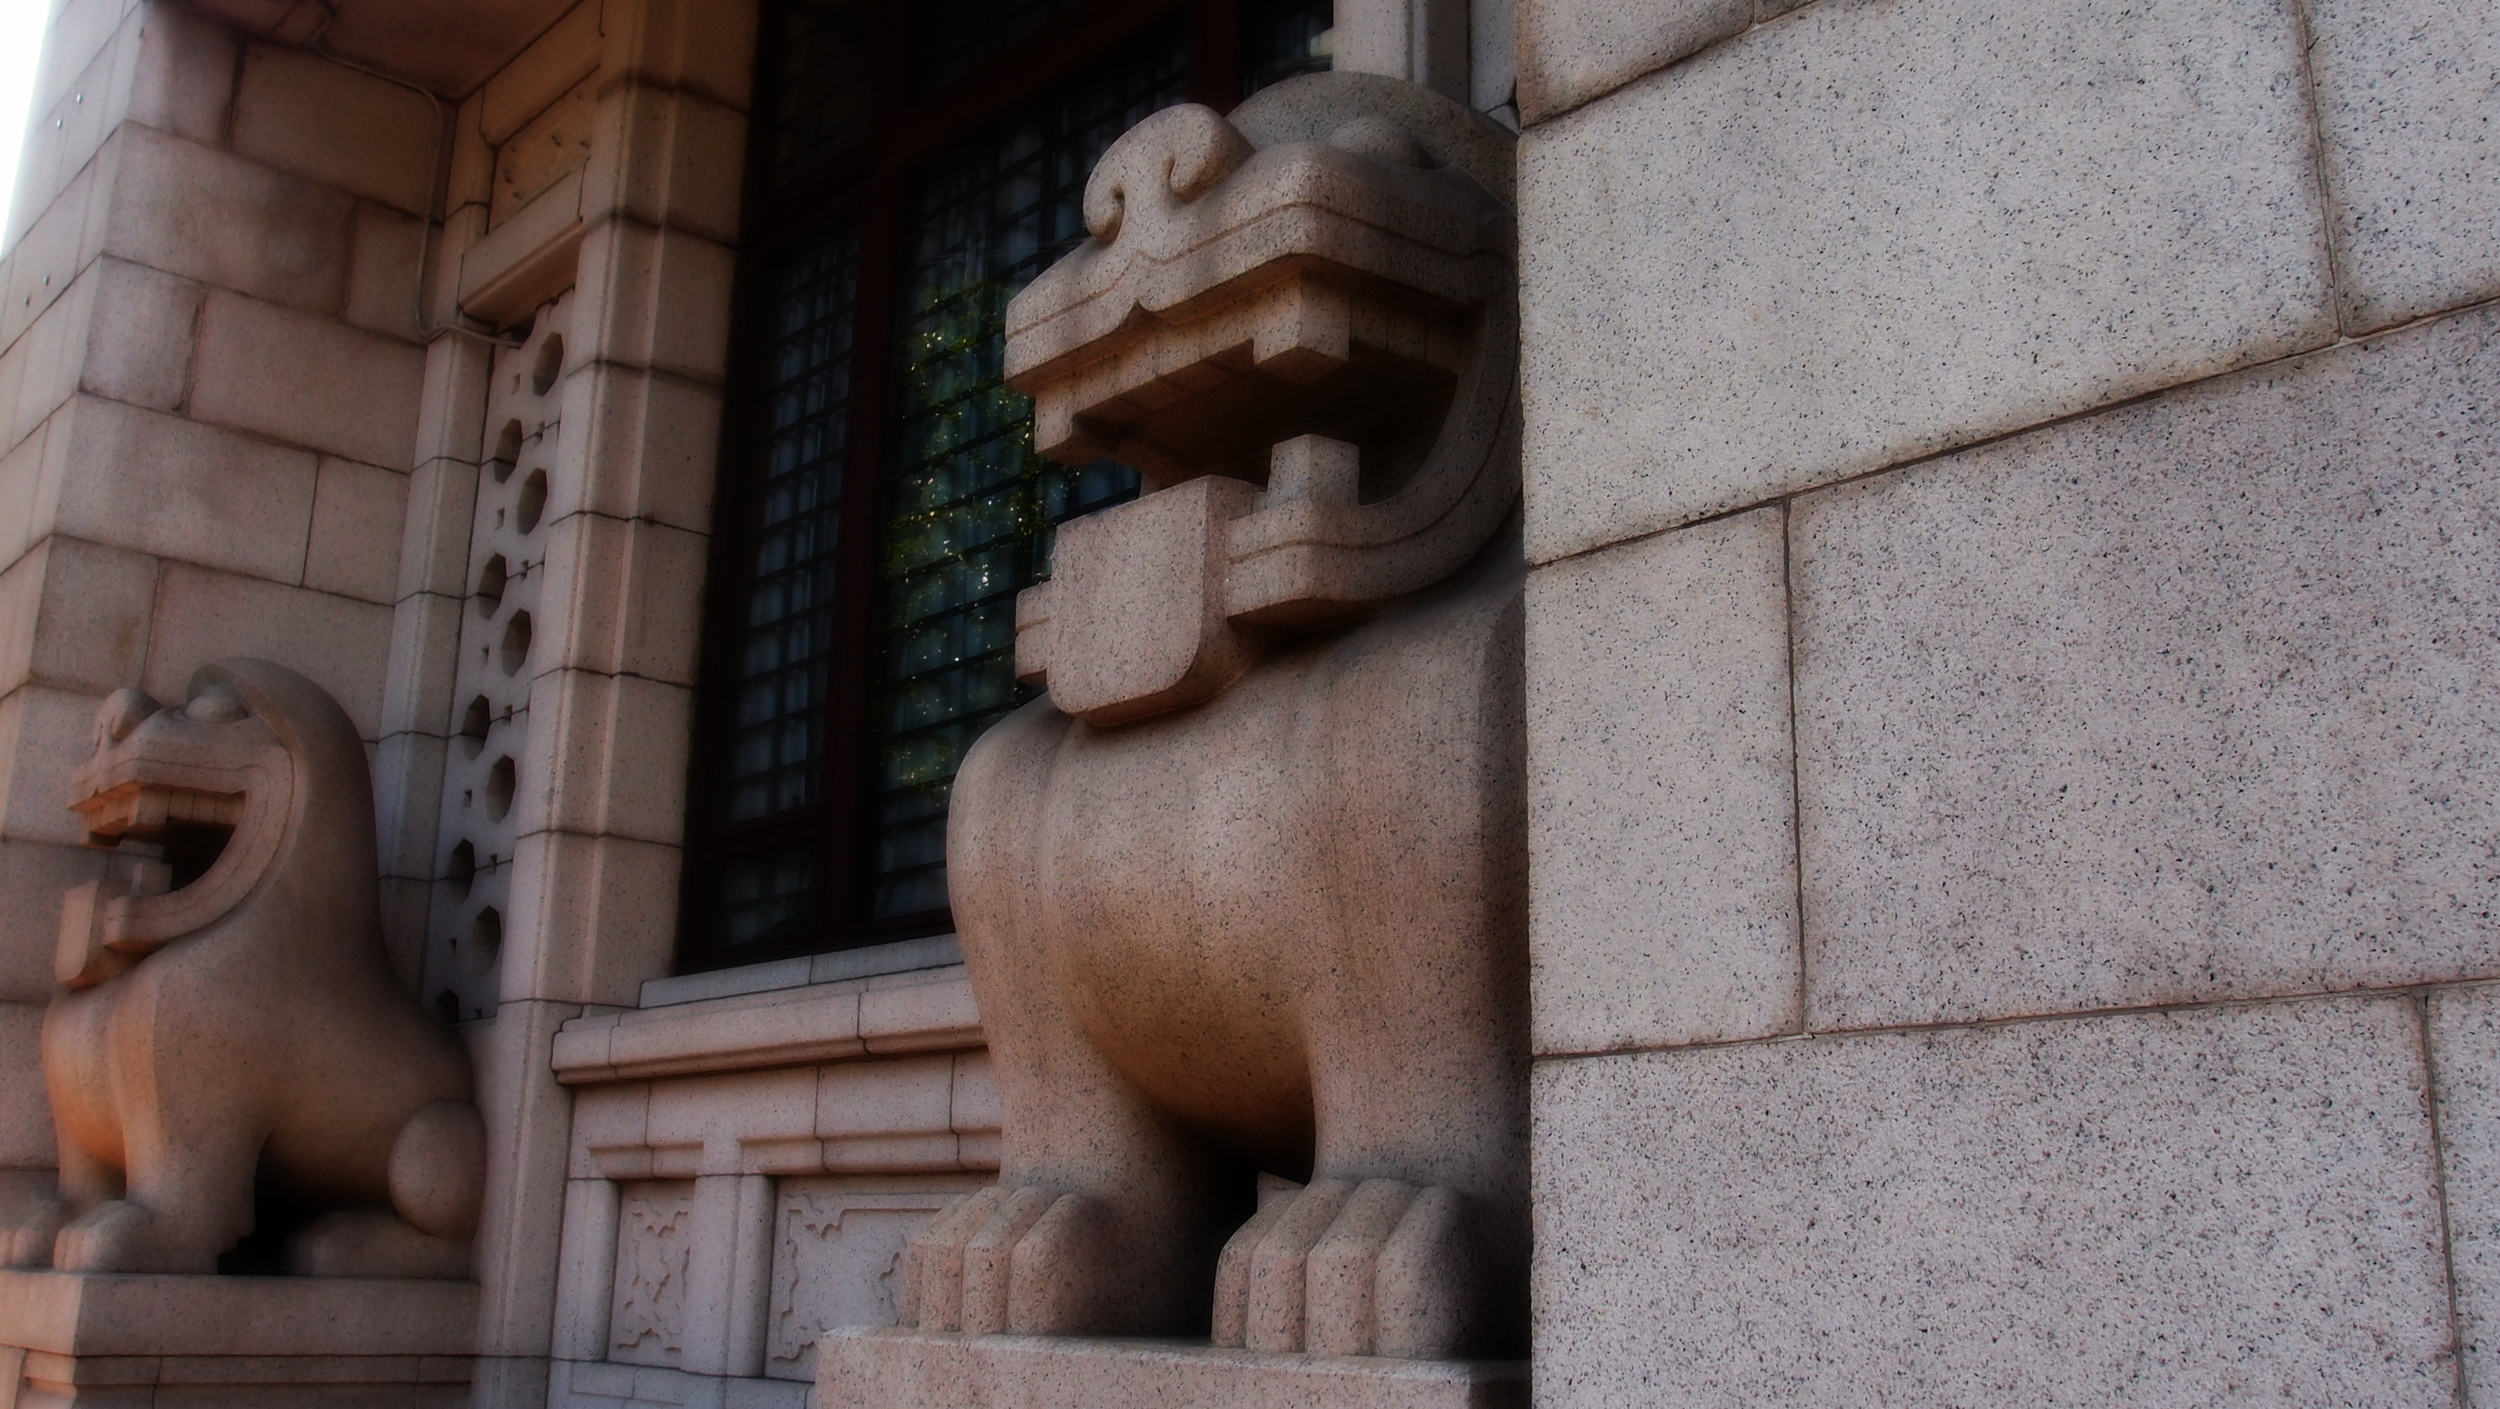 The original Art Deco Bank of China Fu Dogs from 1953 - you can see them if you walk around the building towards Cheung Kong Centre - I think they are very stylish and such a shame that the Commie Management didn't like them so they were replaced by the more traditional Chinese Fu Dogs outside the main entrance to the Bank.